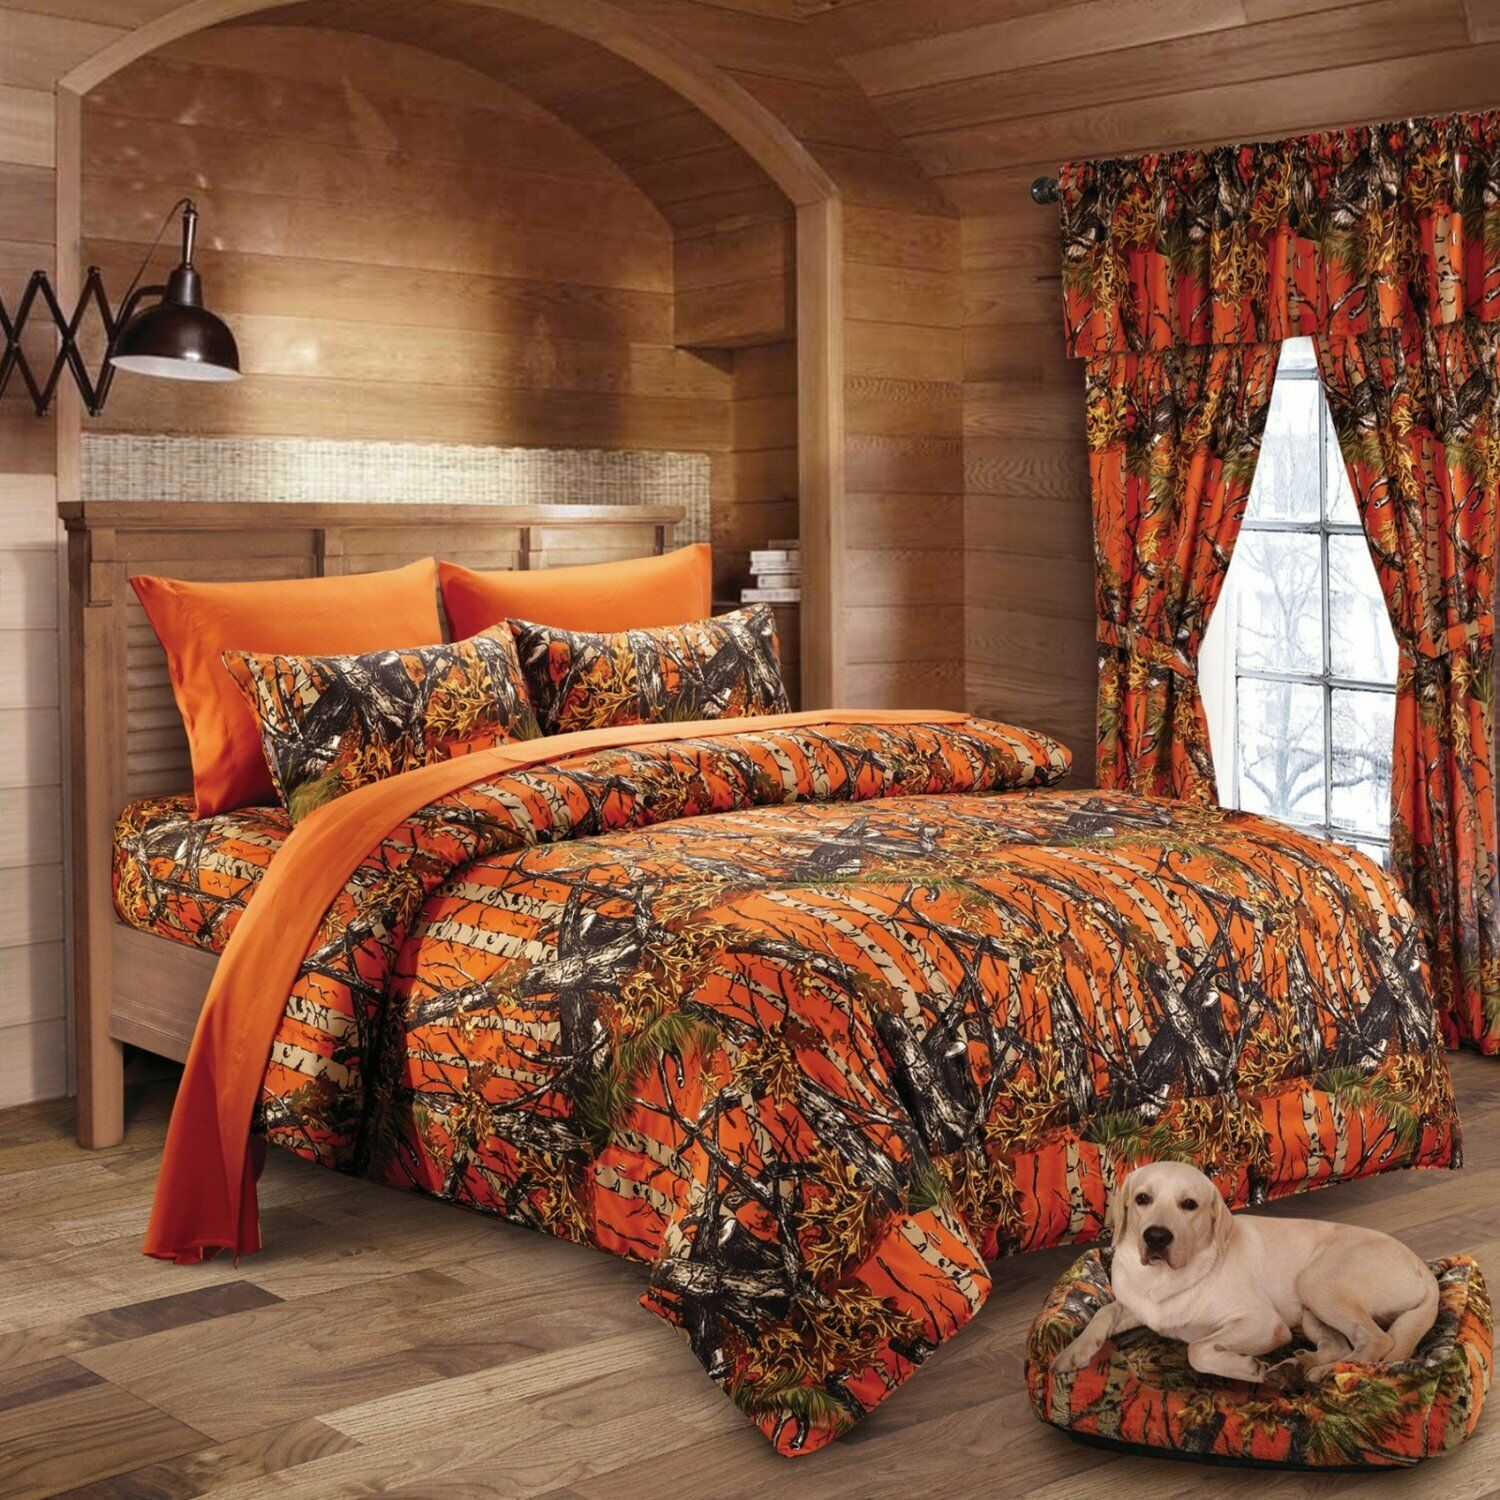 12 PC WOODS Orange CAMO CAMO CAMO COMFORTER AND SHEET SET FULL Größe  CAMOUFLAGE  CURTAINS ffb434